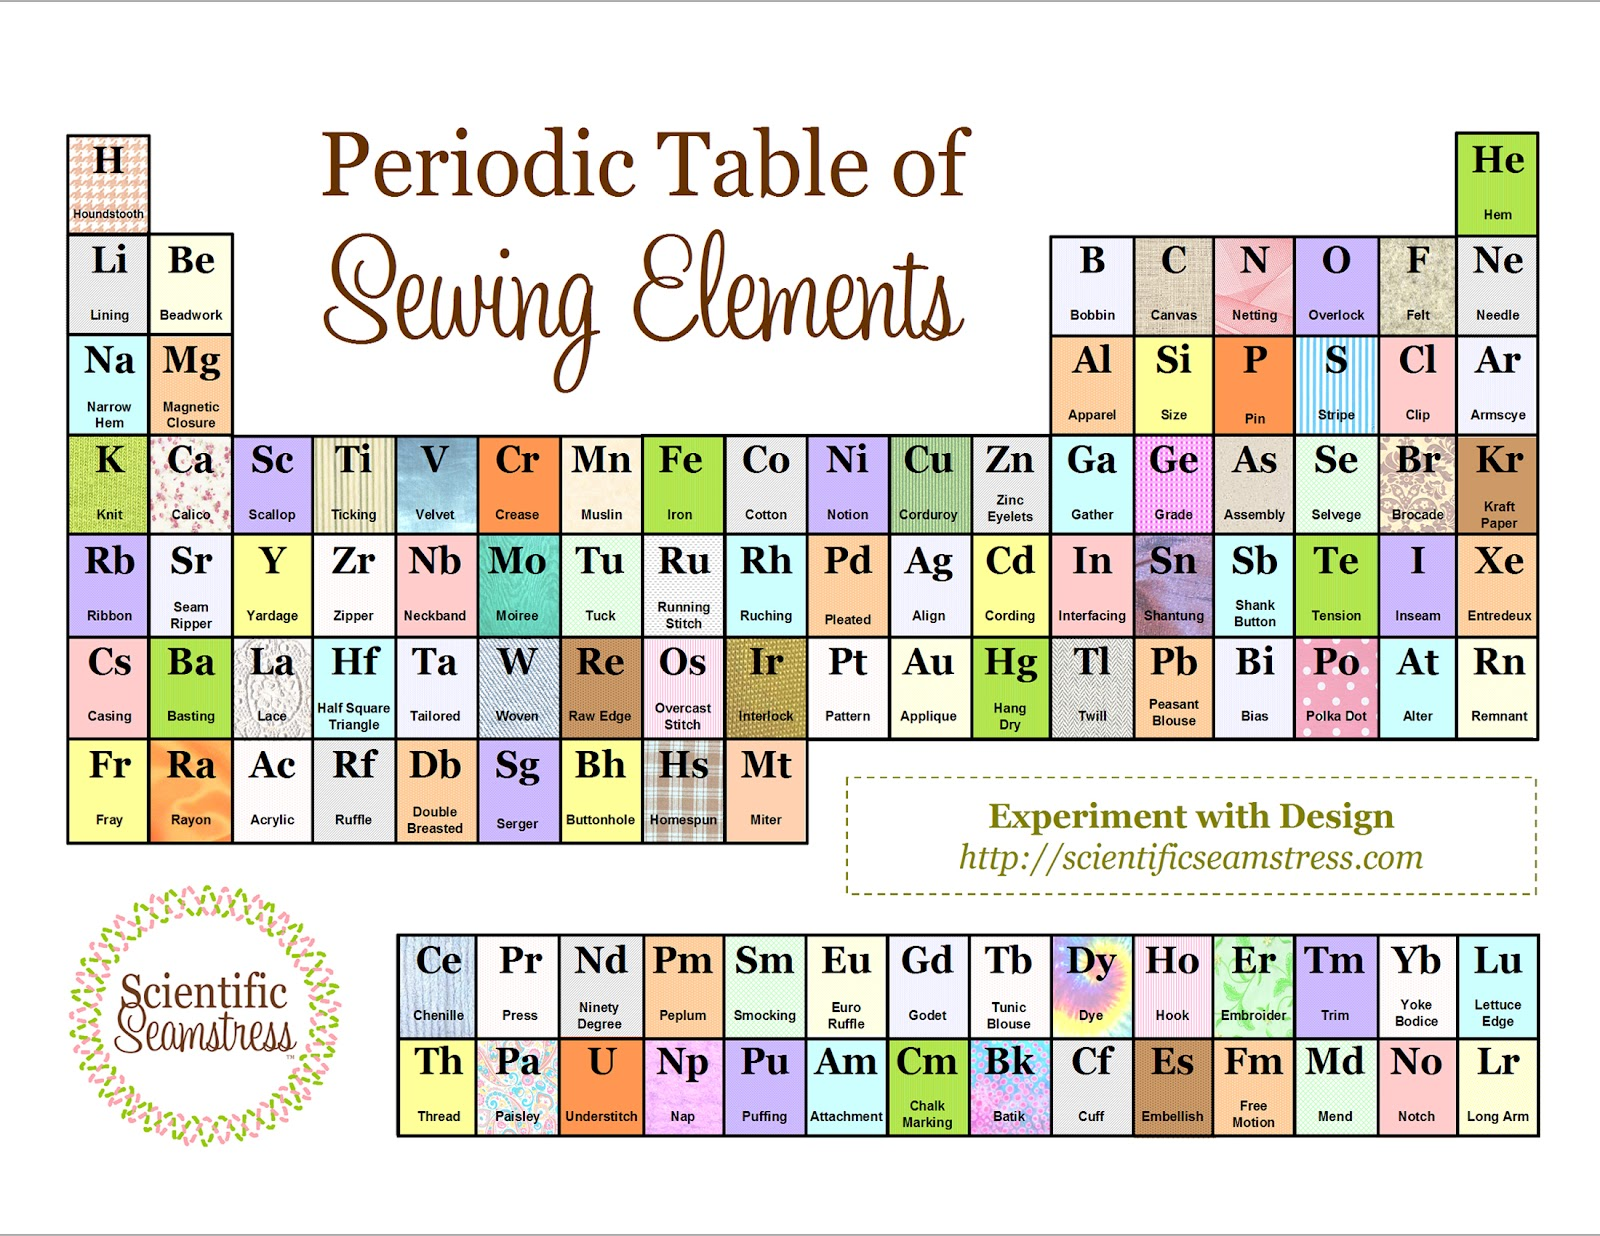 Funny quotes about periodic table quotesgram for Table quotes